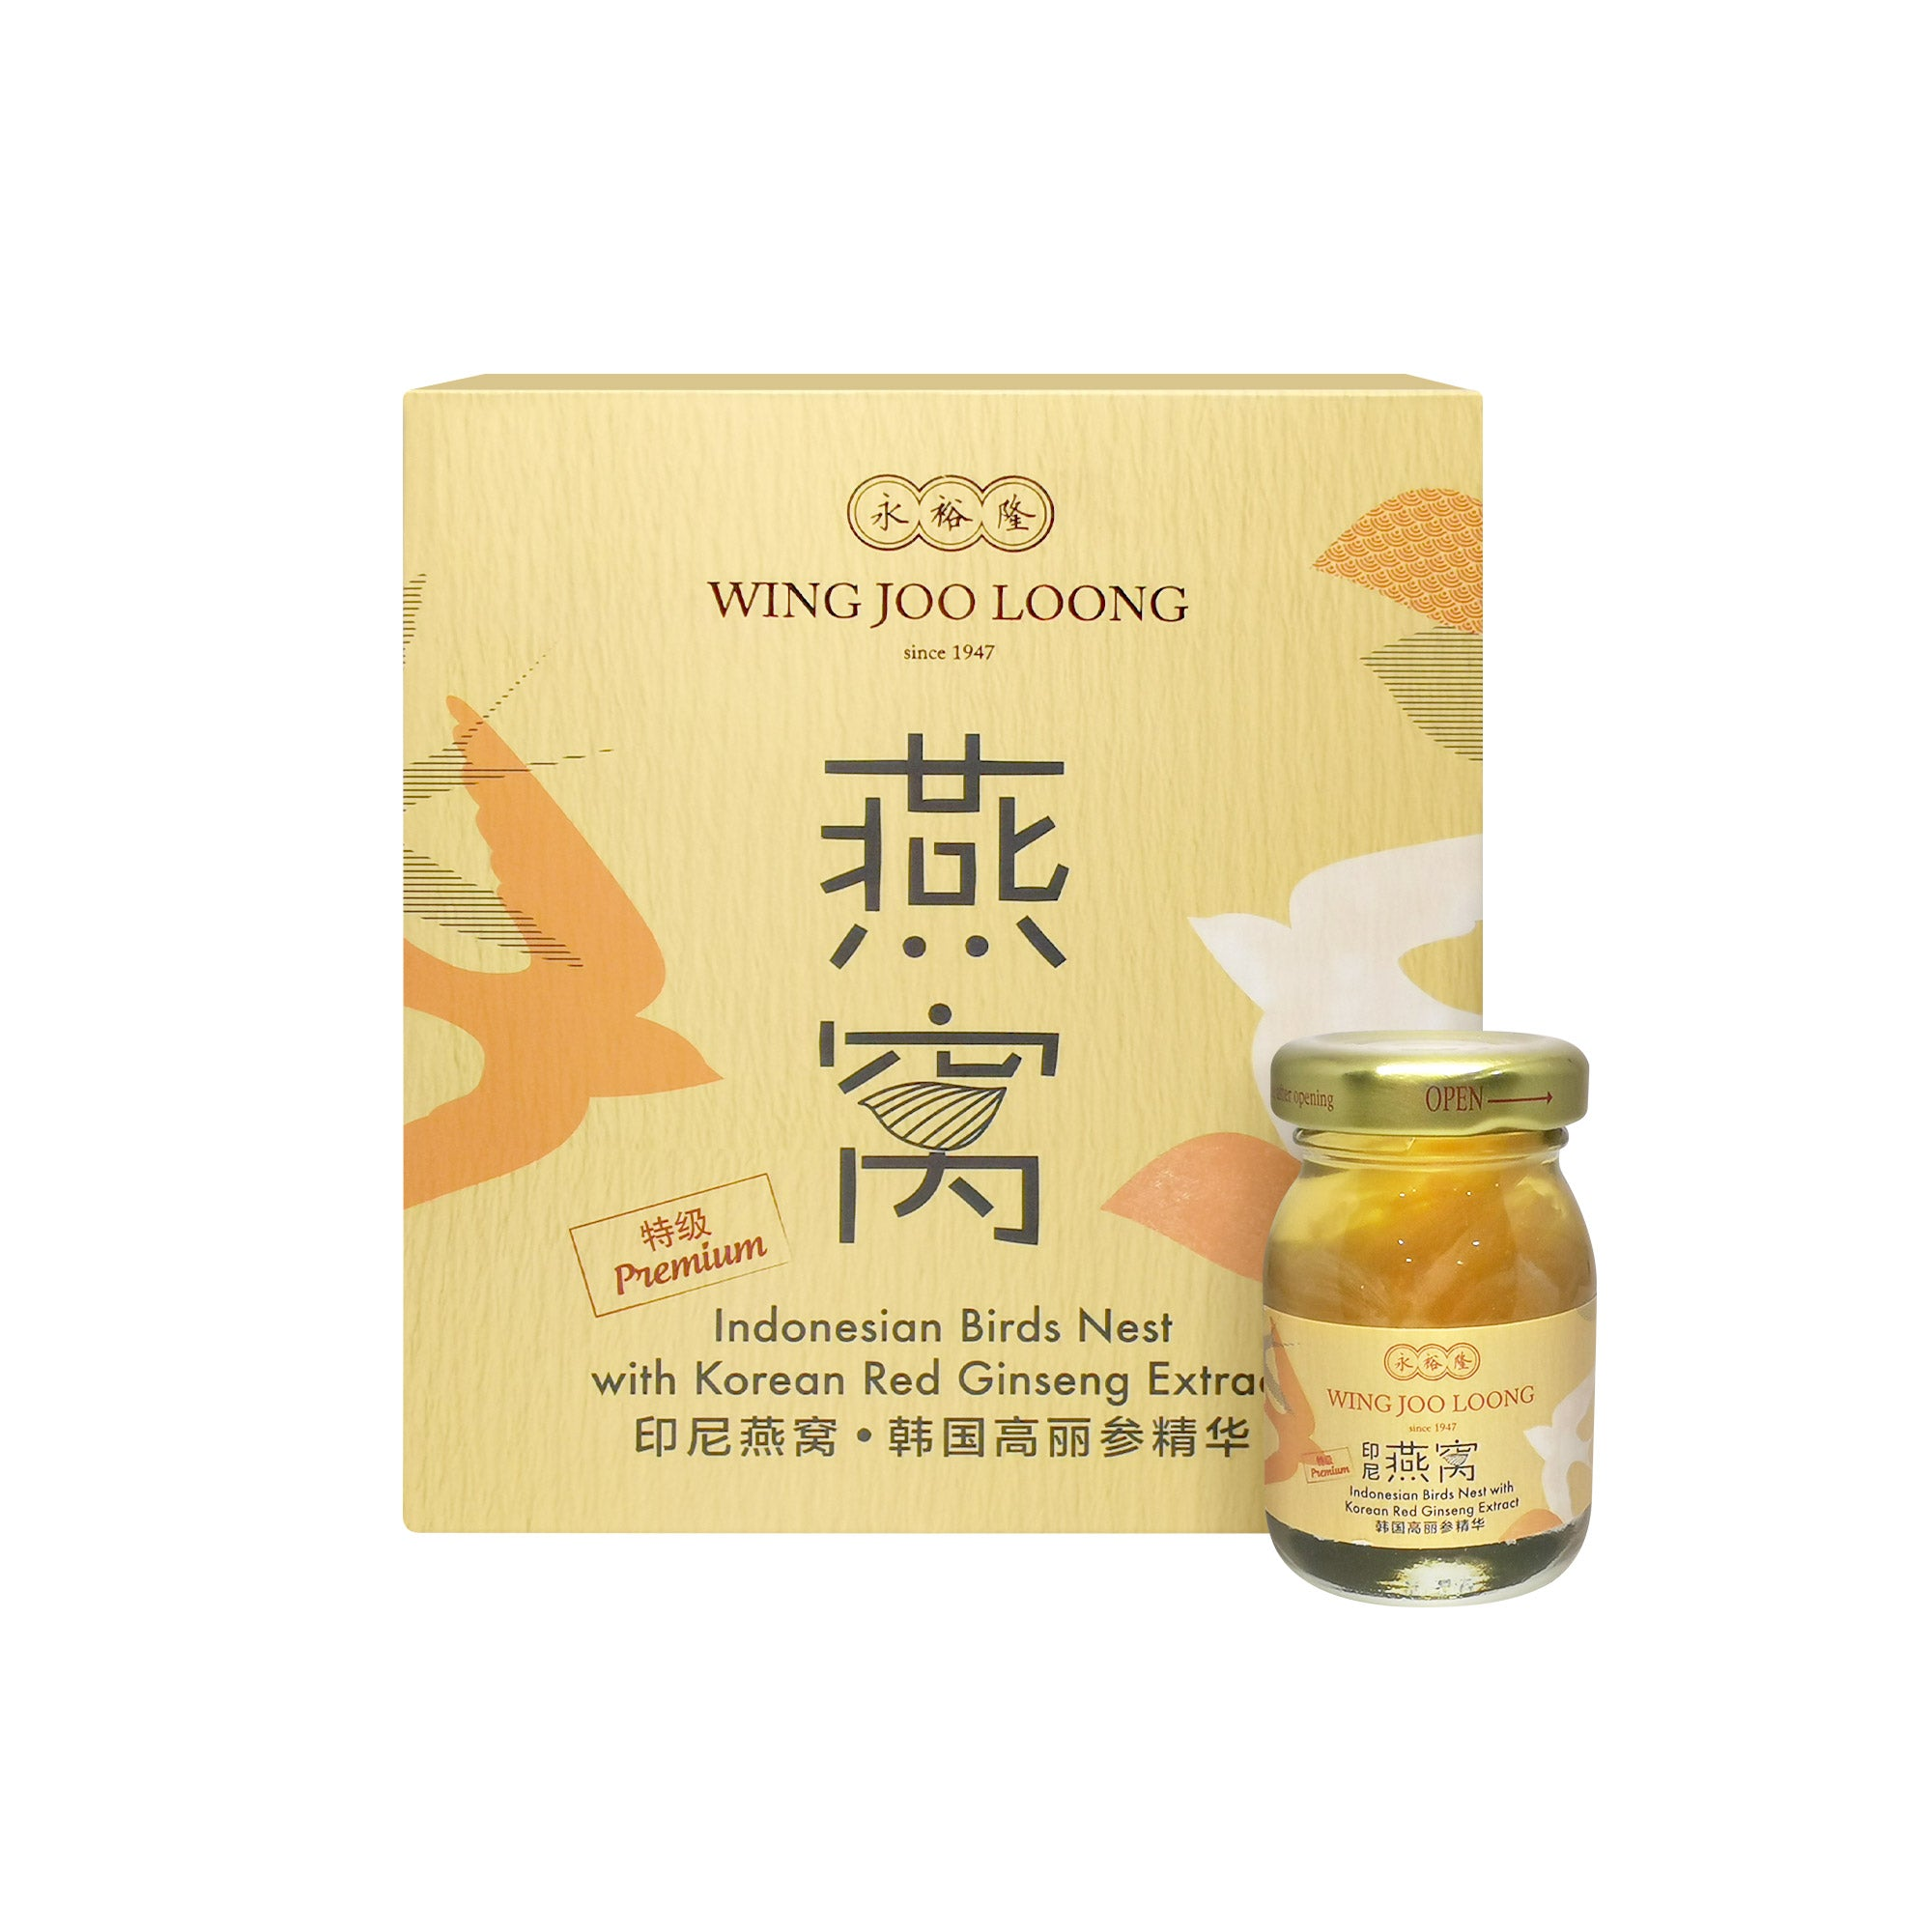 Premium Indonesian Bird's Nest with Korean Red Ginseng Extract 6s